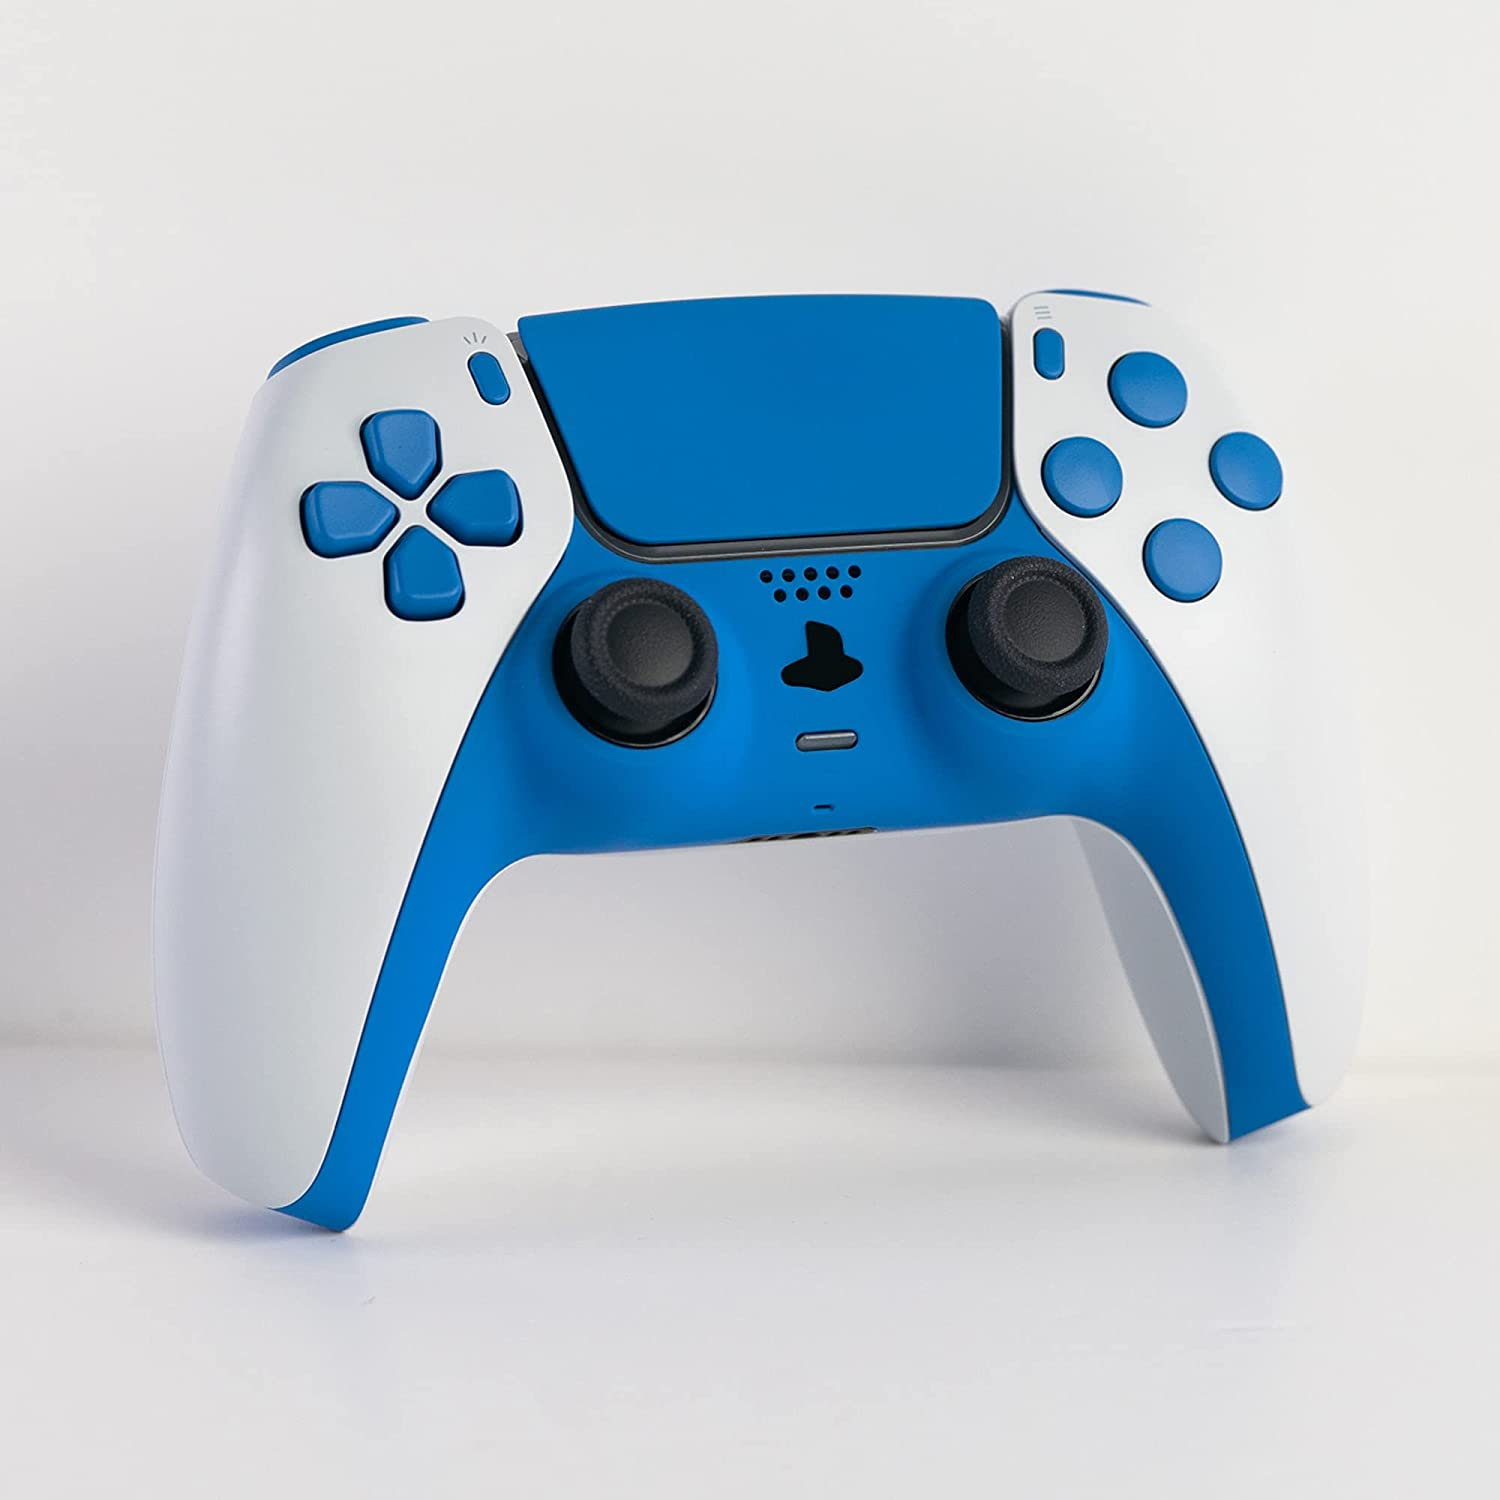 Gamenetics Custom Official Wireless Bluetooth Controller for PS5 Console - PC - Un-Modded - Video Gamepad Remote (Soft Touch Inverted French Blue)